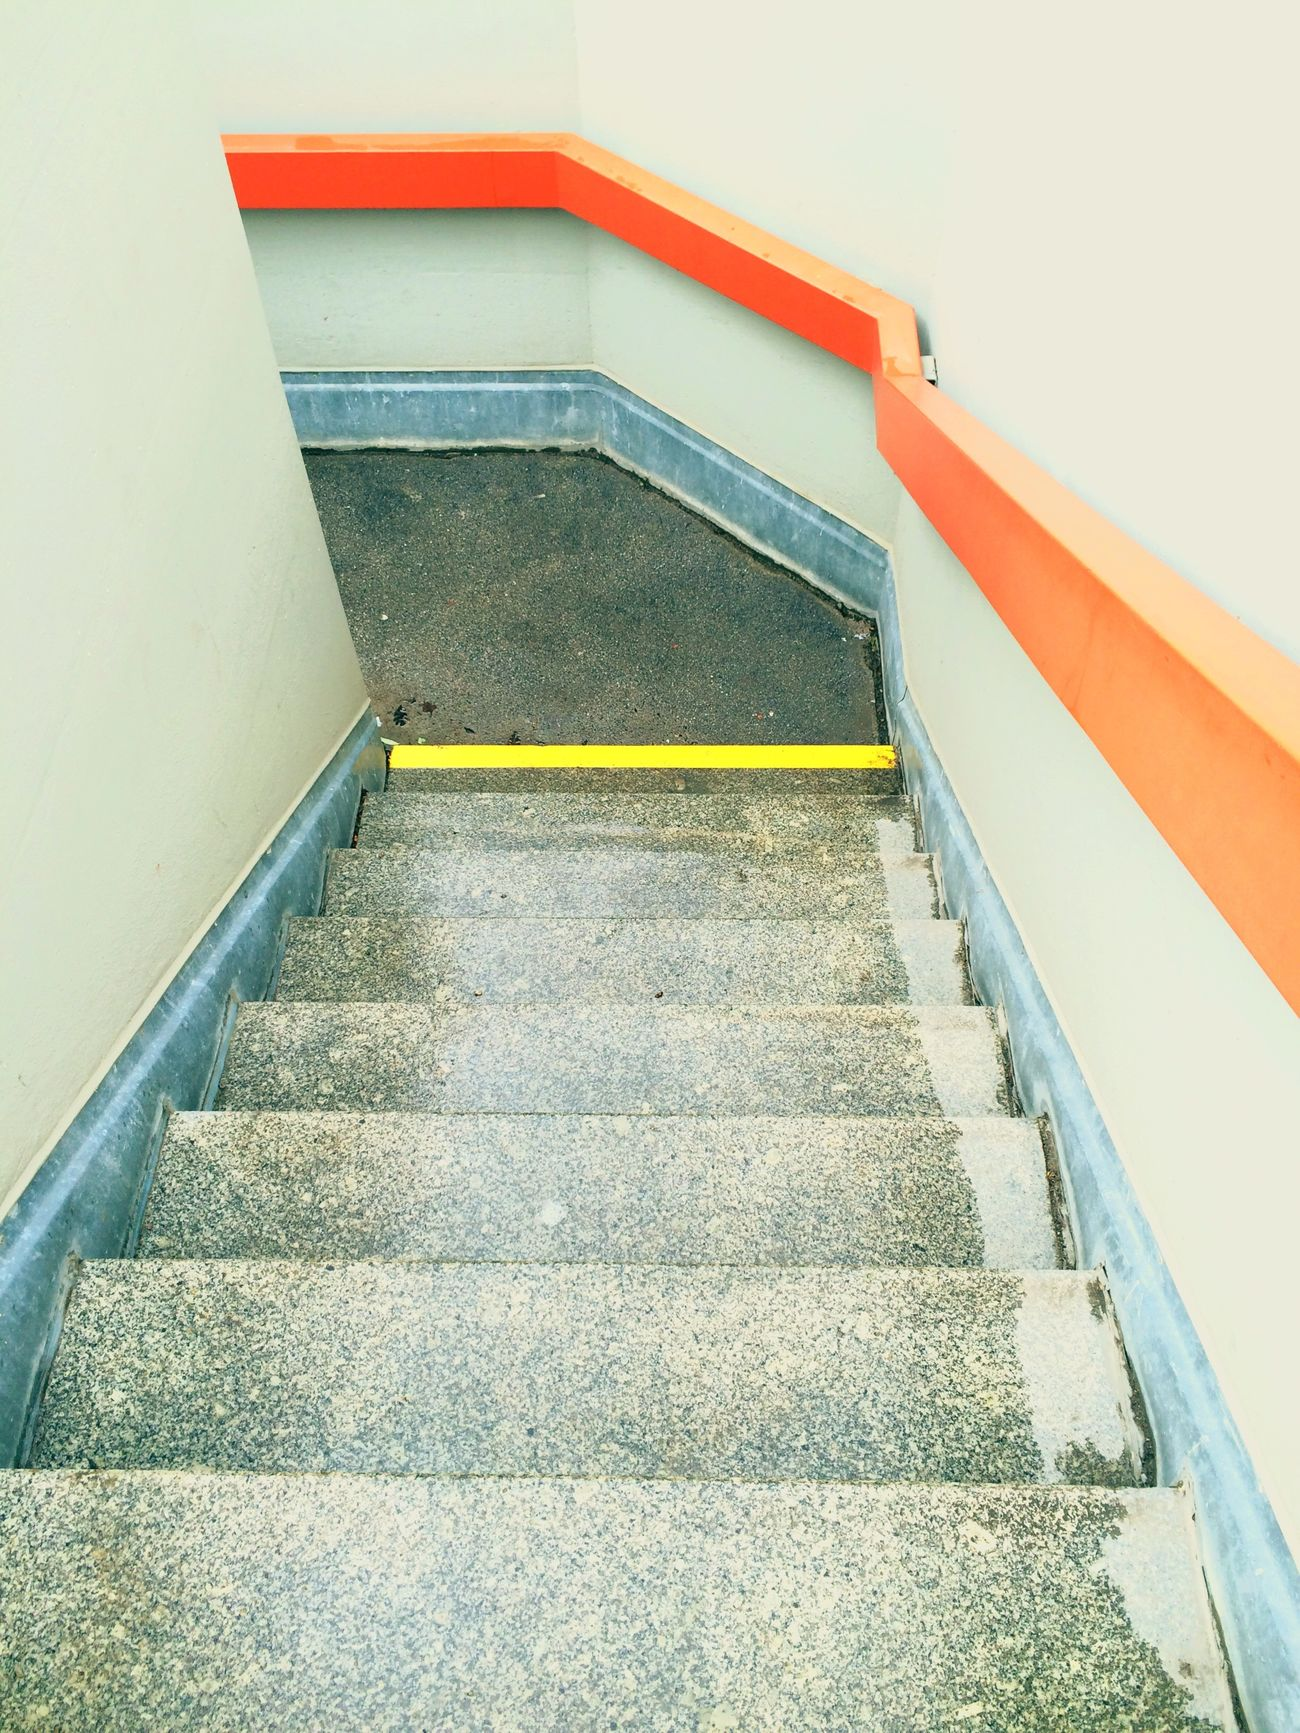 Stairs Go Away Go Down Steps Step By Step Target Built Structure Building Graphic Look IPhoneography